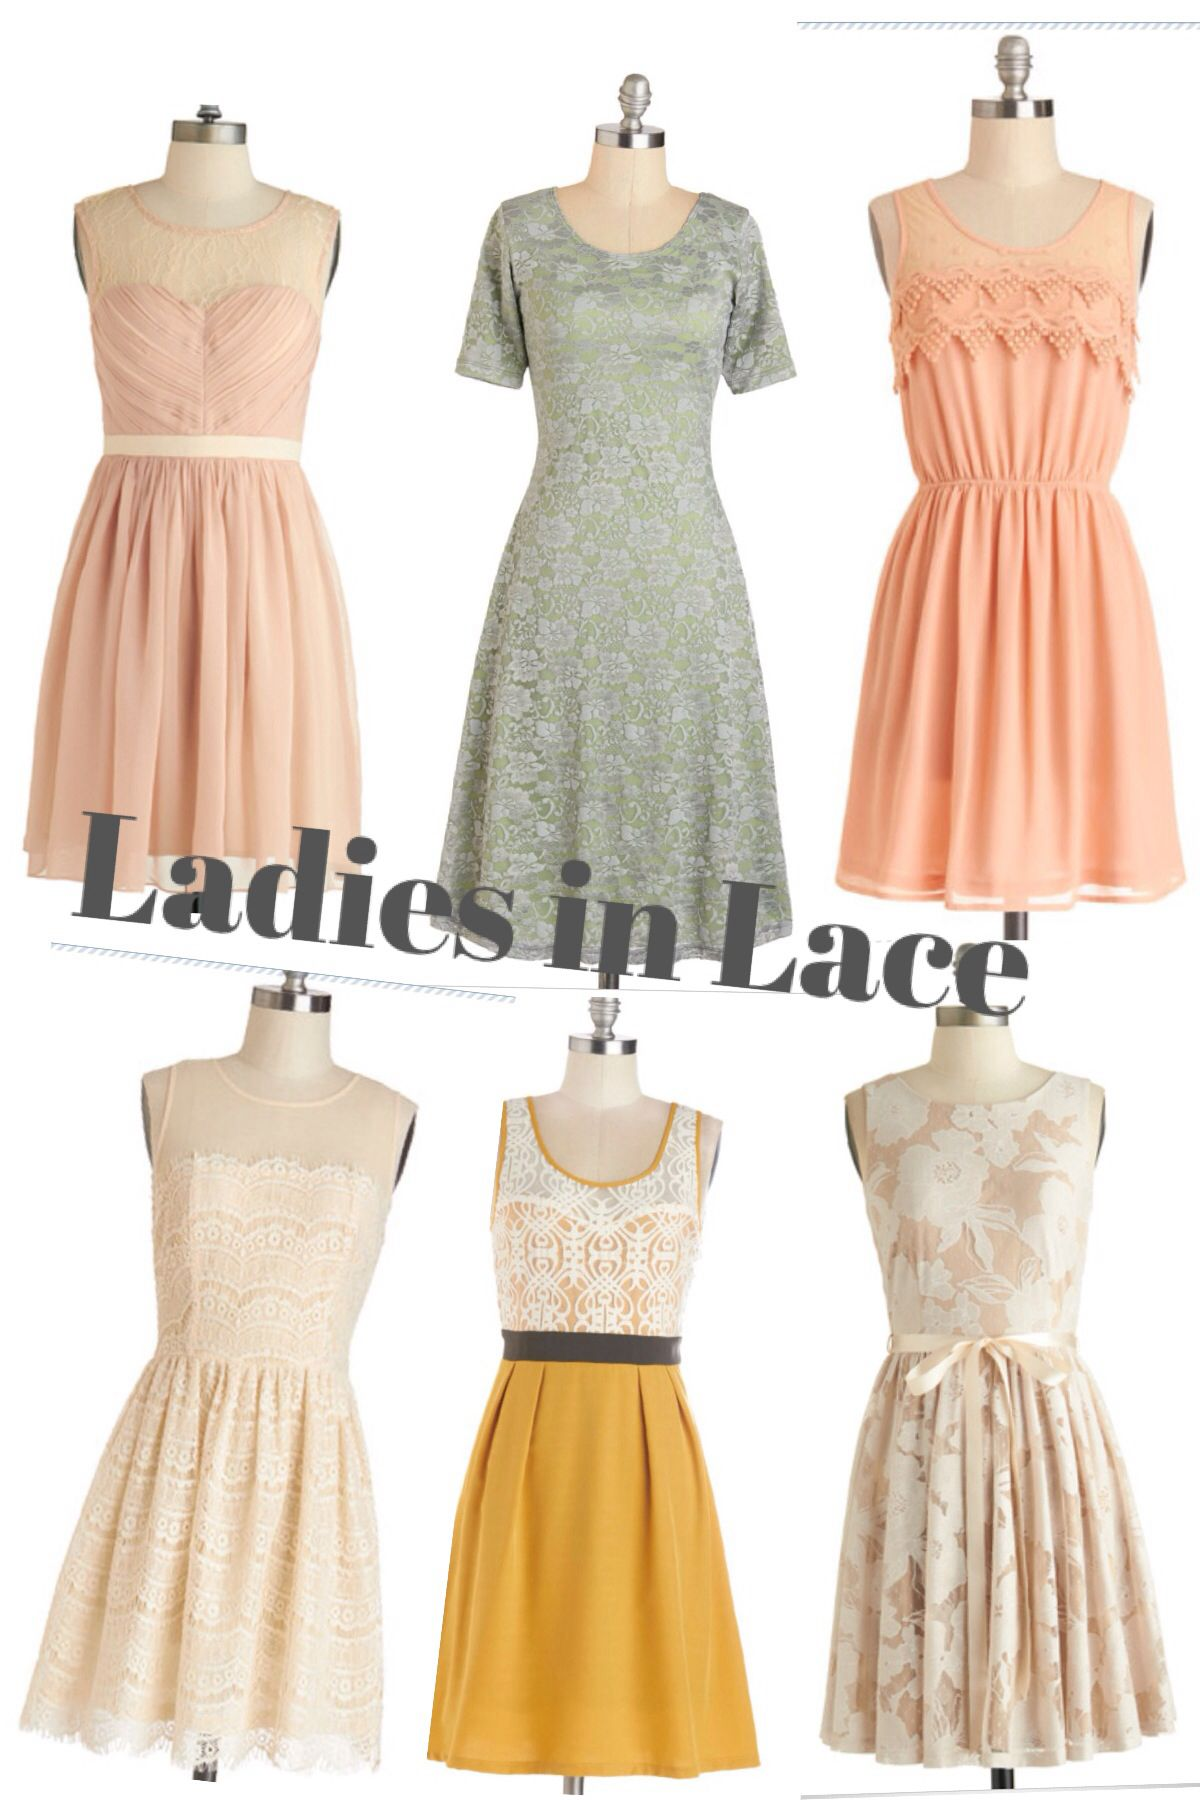 Mismatched bridesmaids dresses from modcloth with lace in gray mismatched bridesmaids dresses from modcloth with lace in gray mustard and neutral tones like the color palate ombrellifo Choice Image